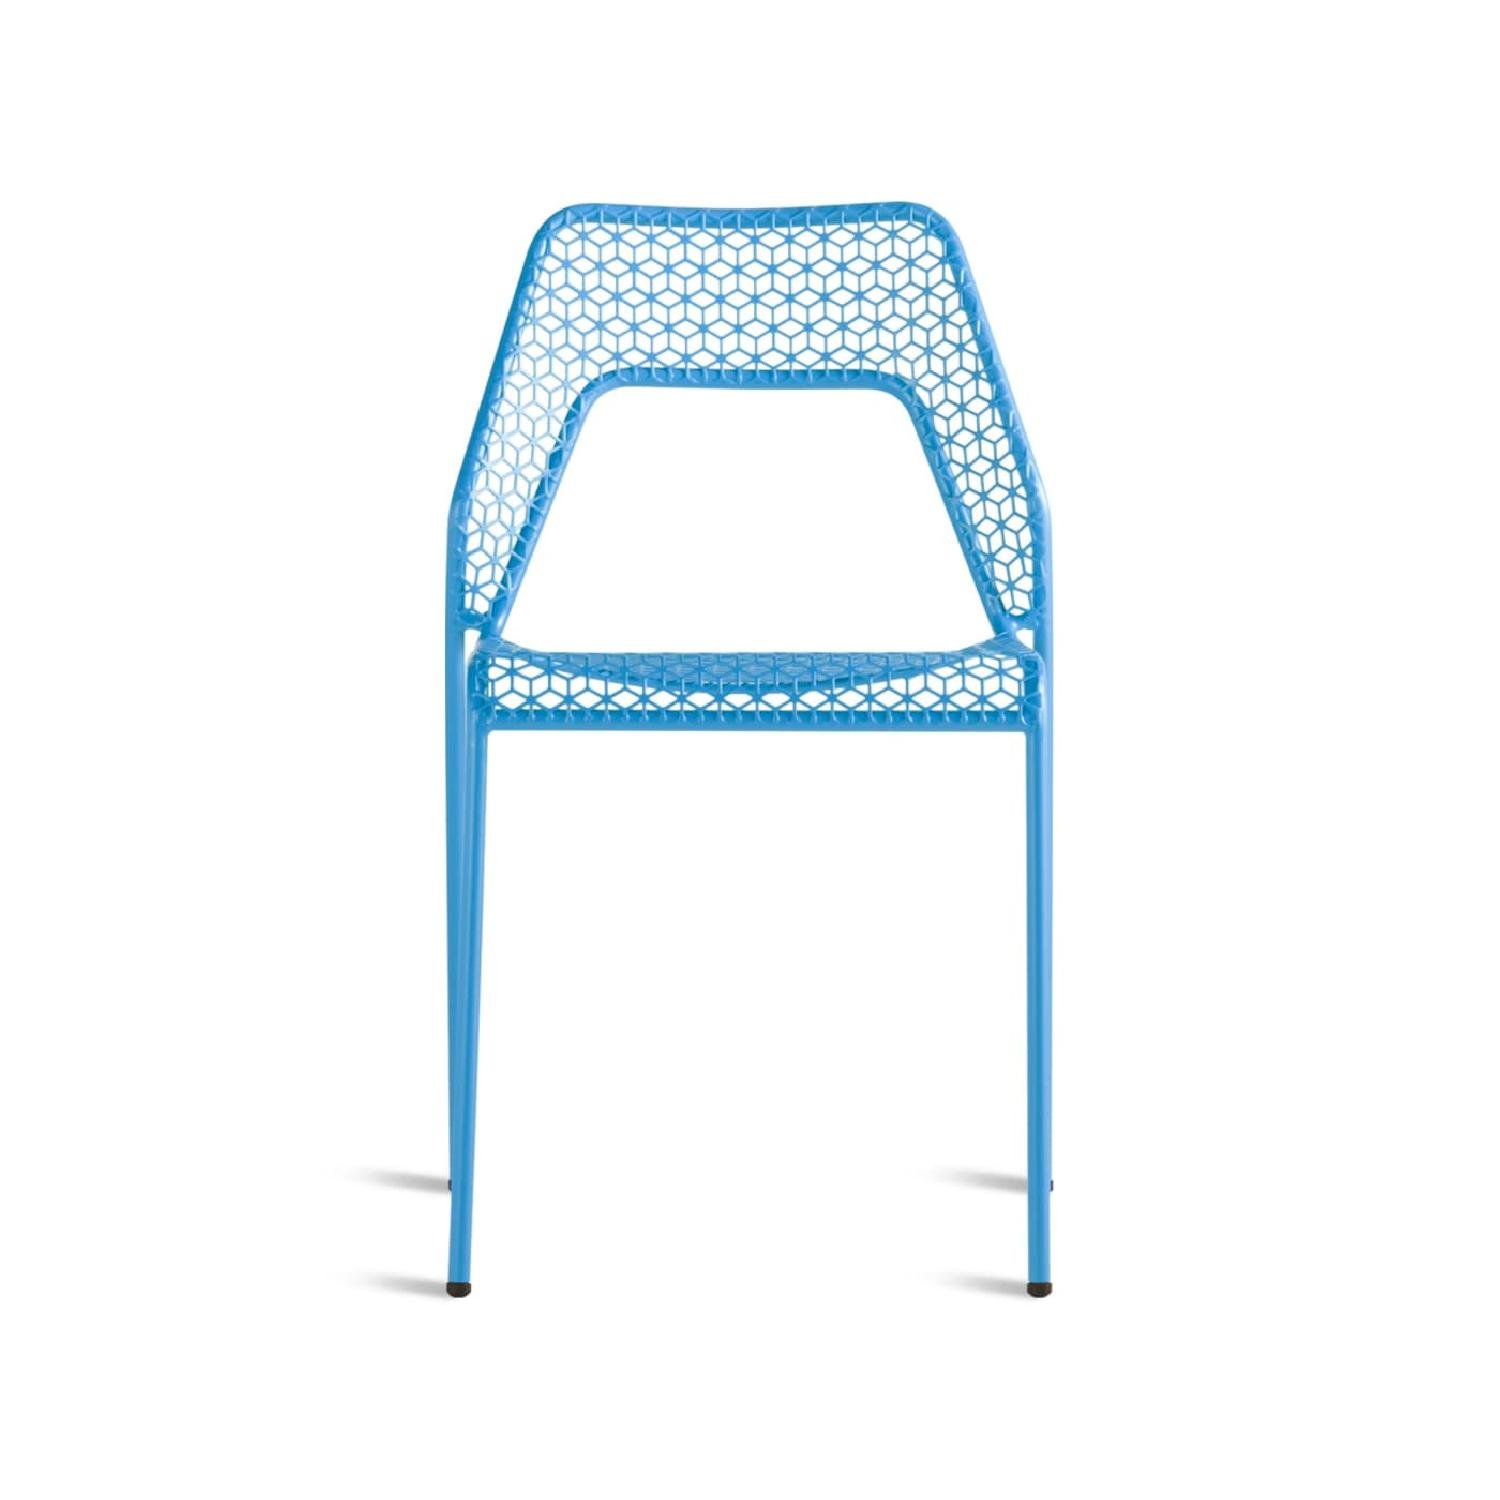 Blu Dot Hot Mesh Chairs in Simple Blue (Set of 4) - image-0